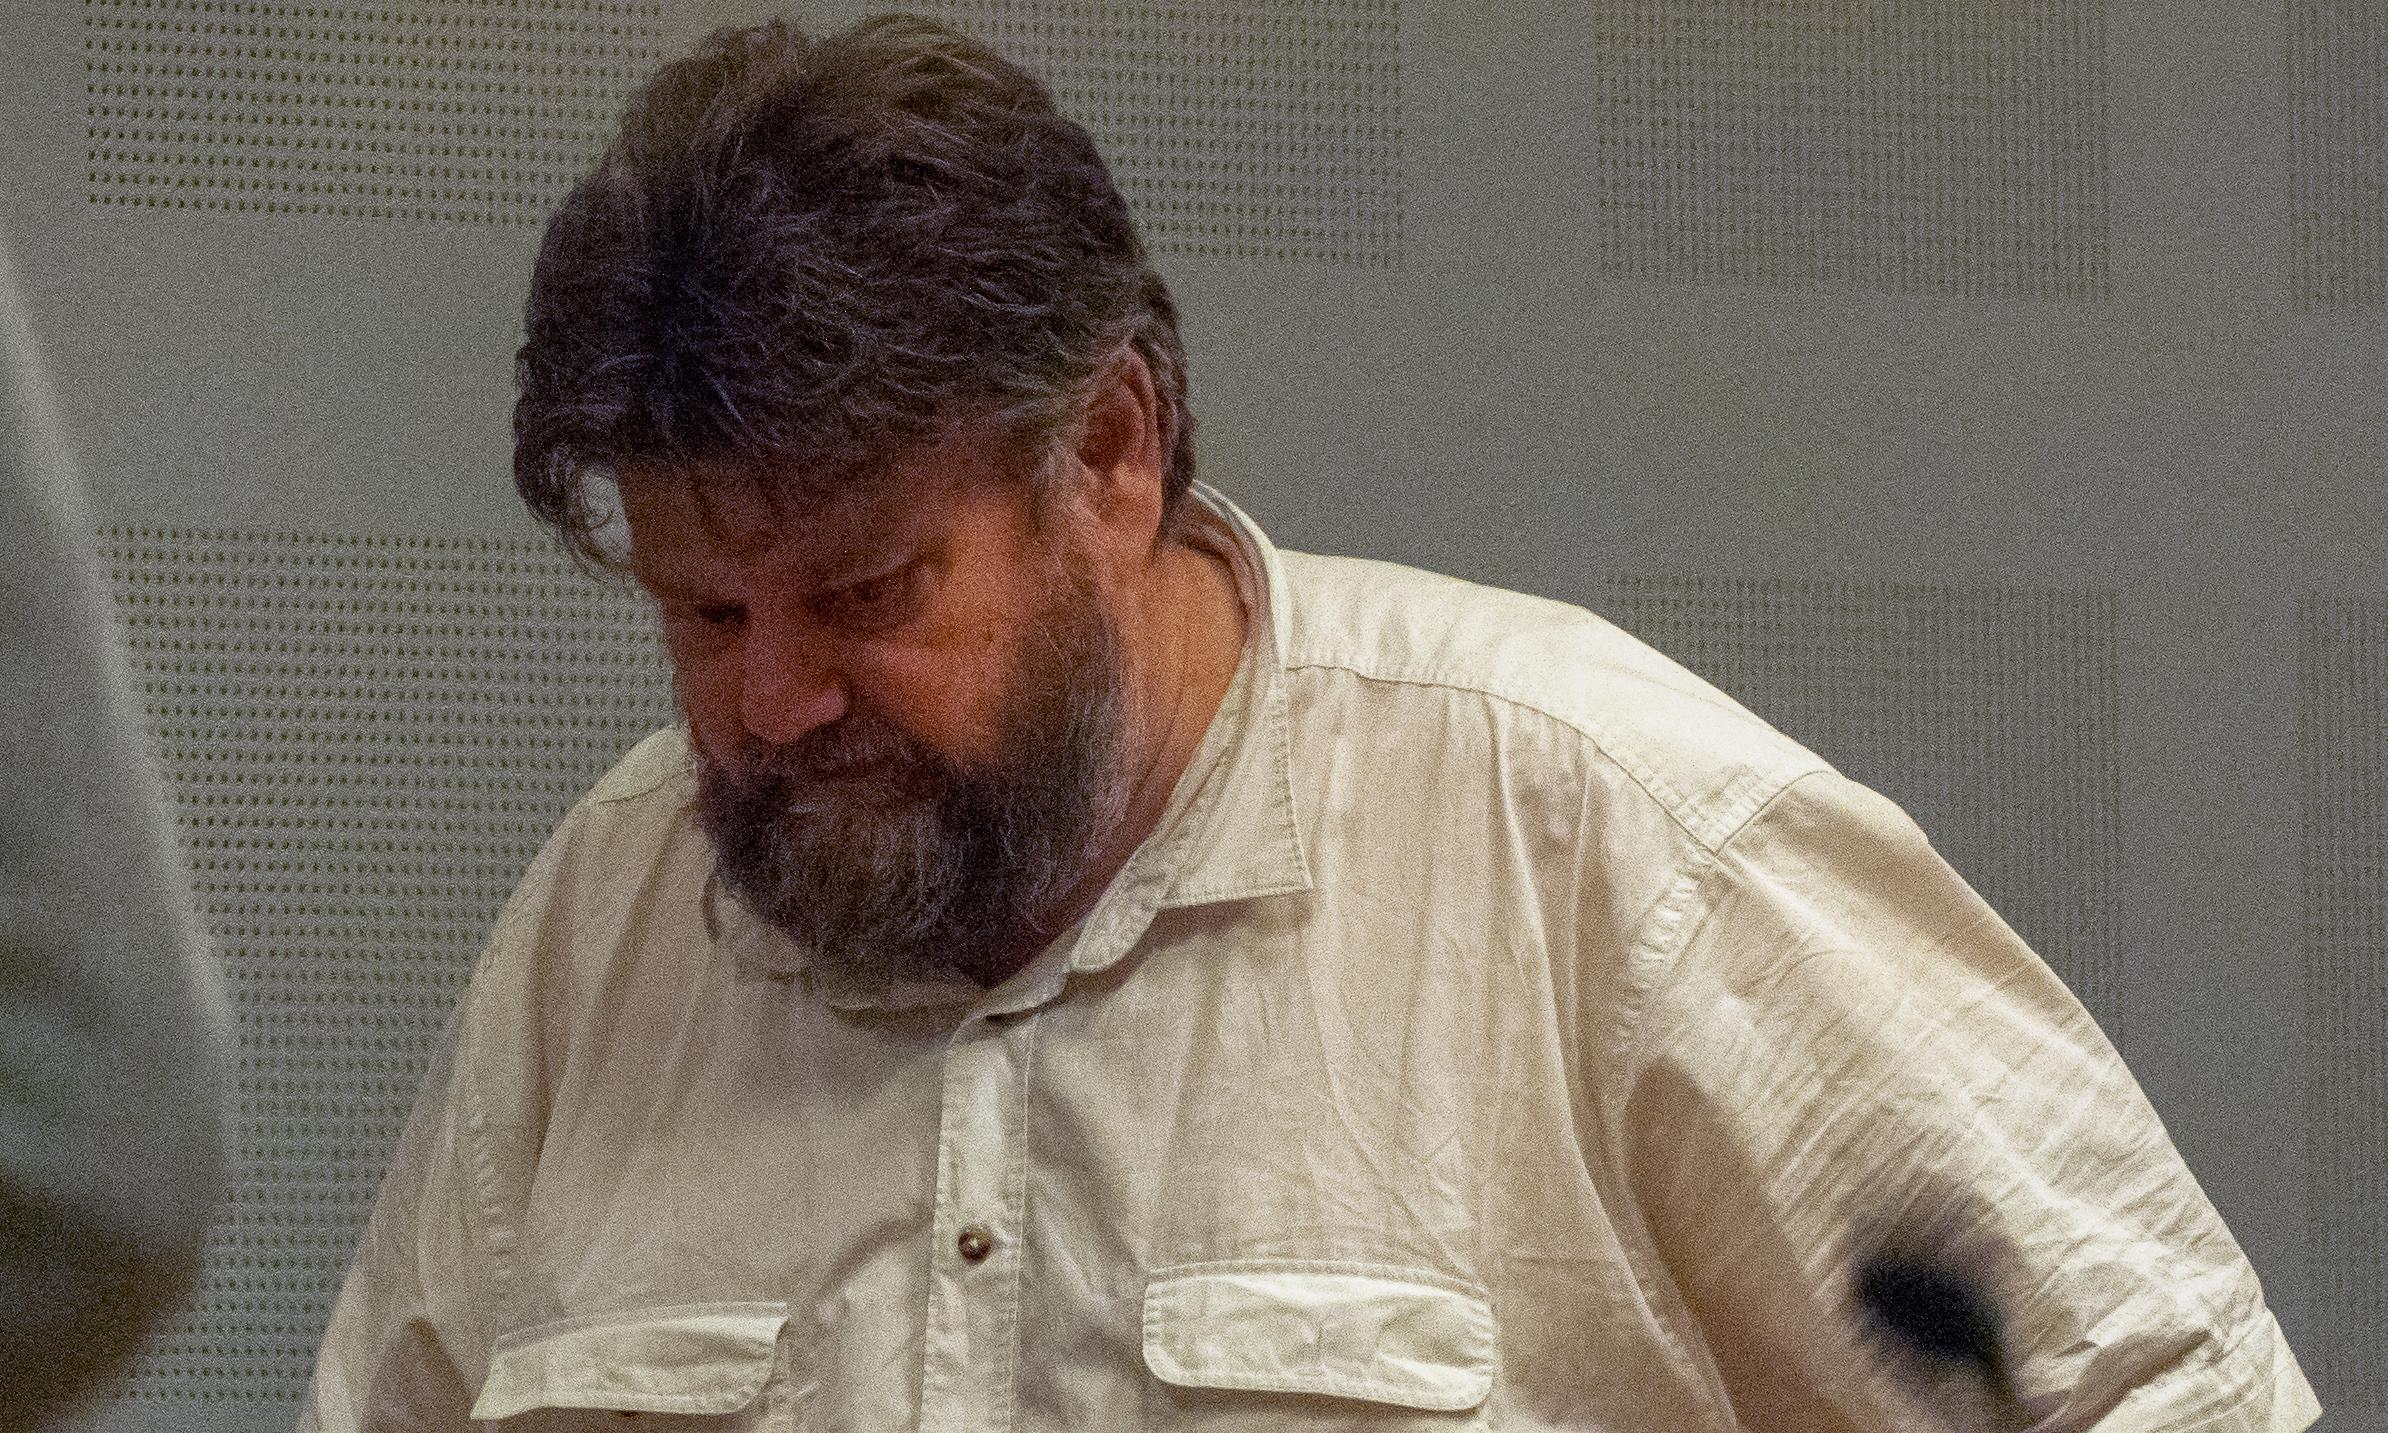 In believing Carl Beech, the Met put the public at risk